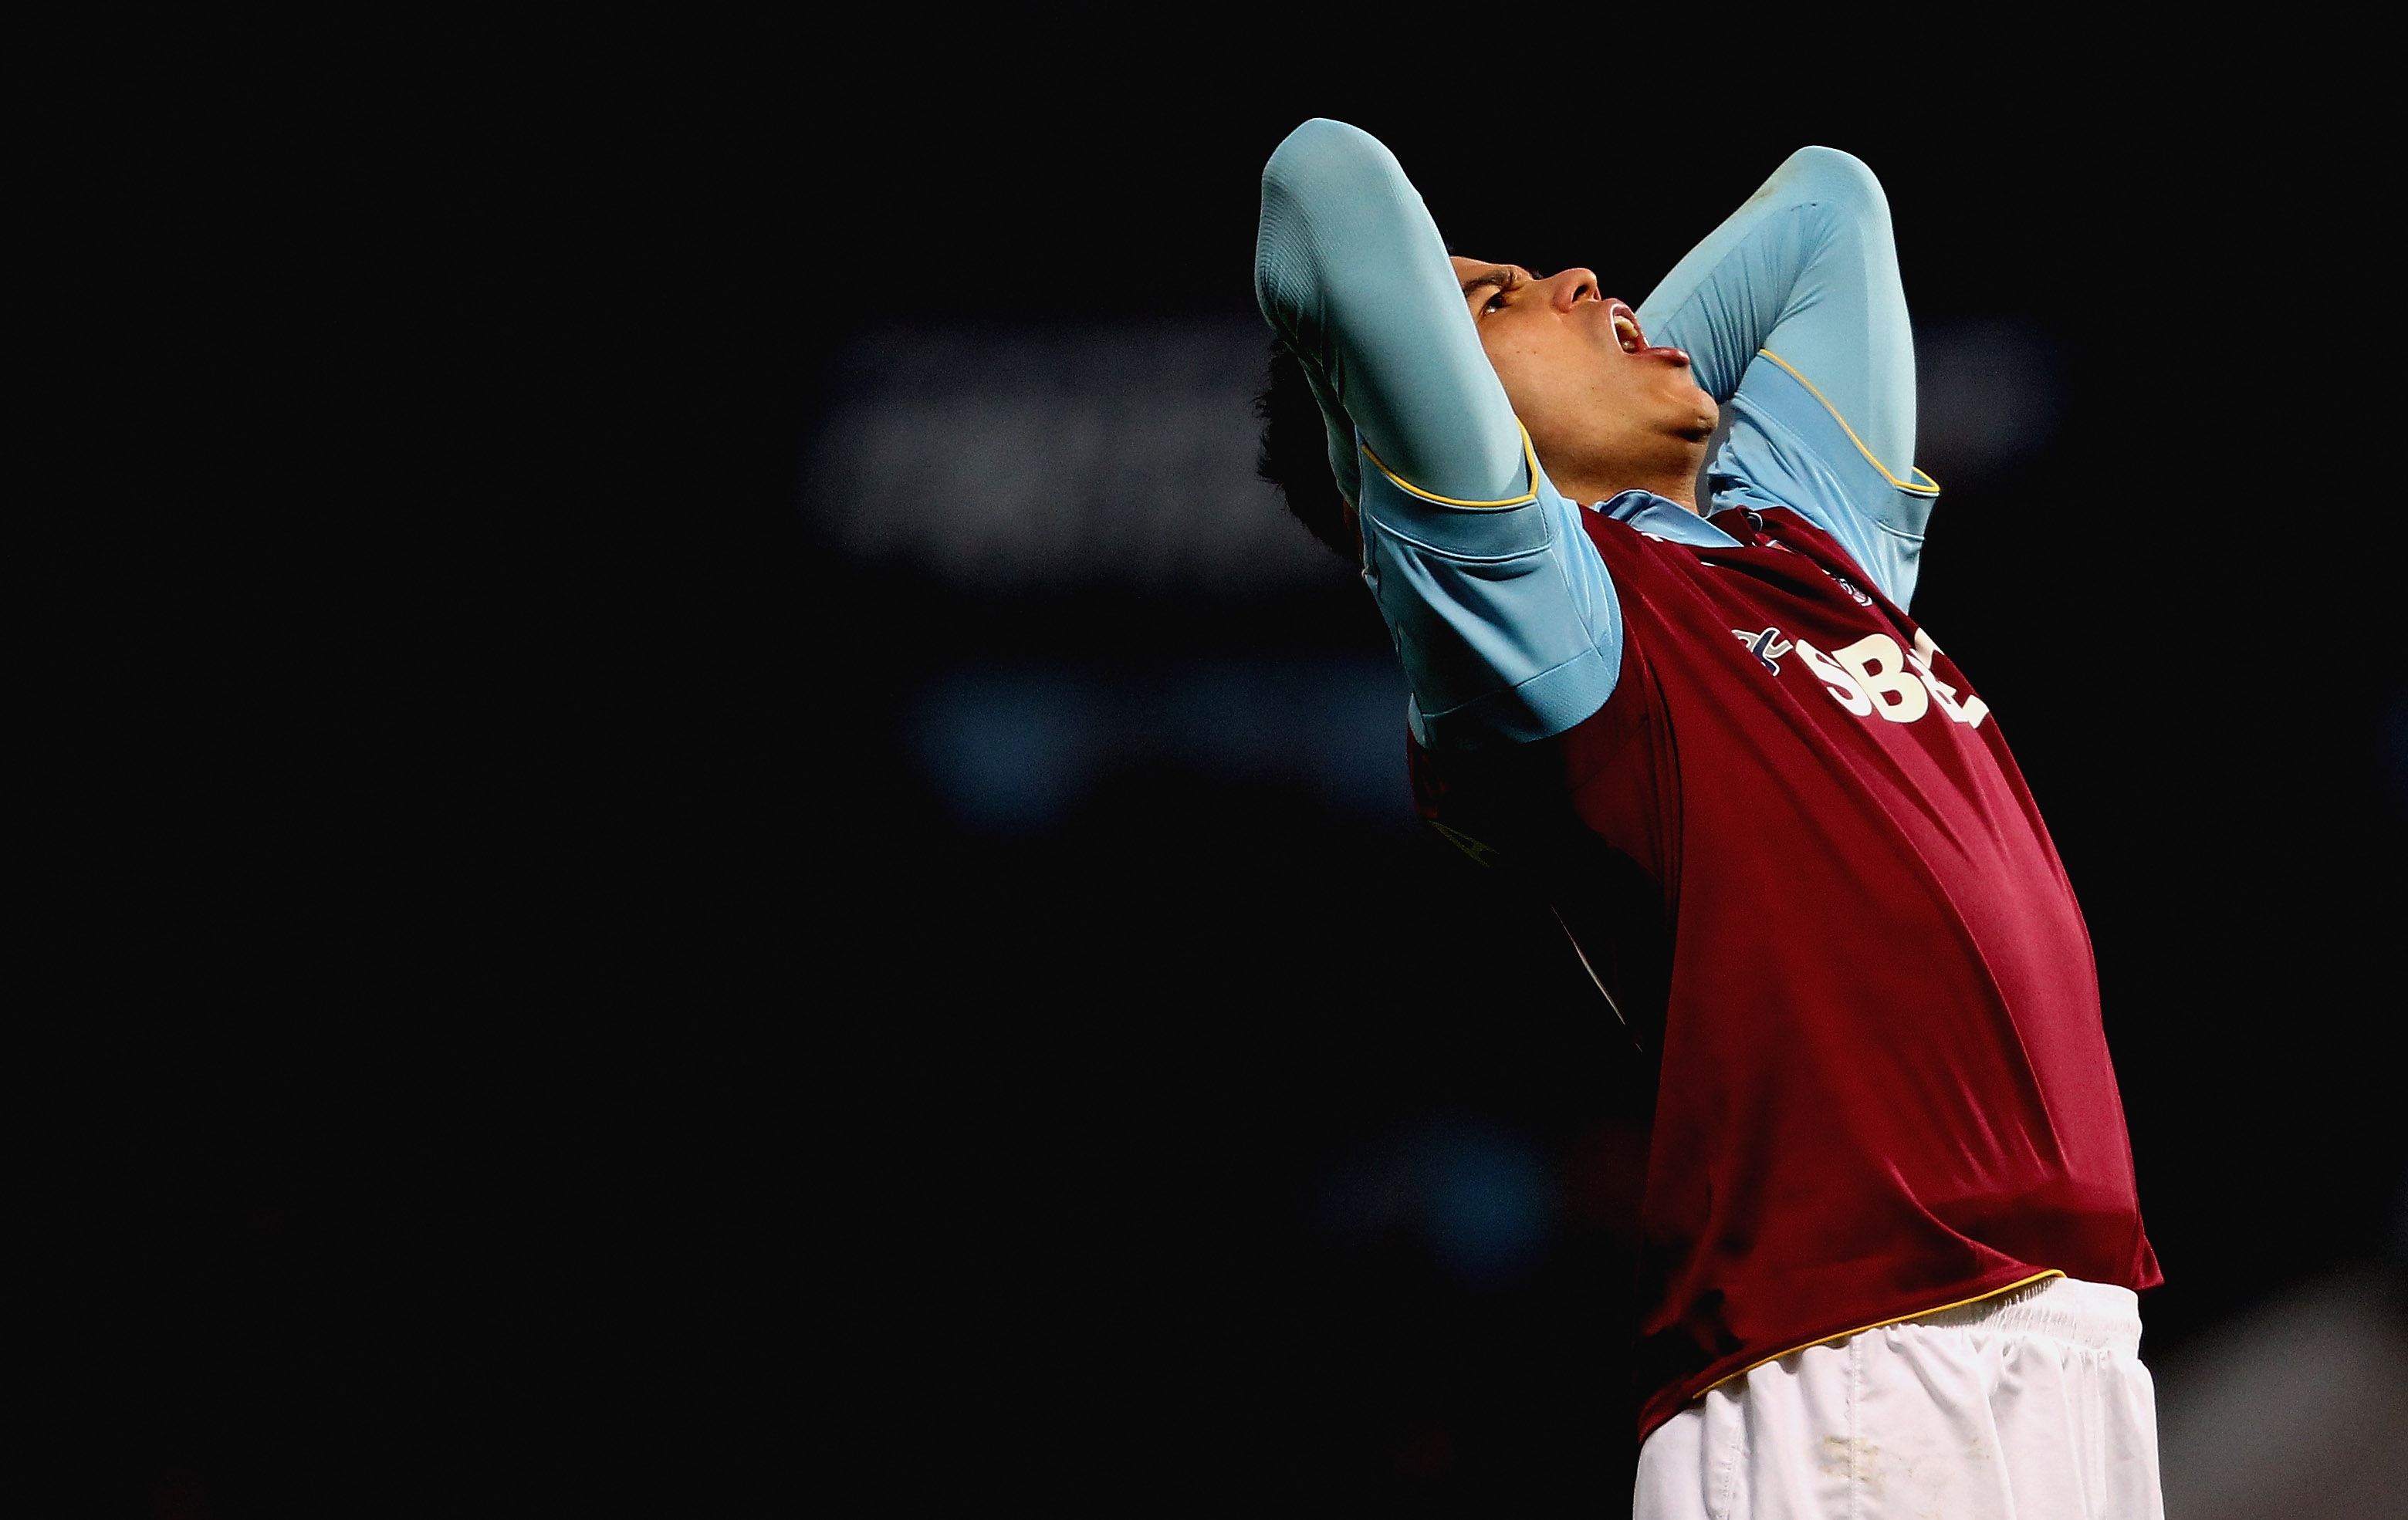 LONDON, ENGLAND - NOVEMBER 27: Pablo Barrera of West Ham reacts after a missed chance during the Barclays Premier League match between West Ham United and Wigan Athletic at Boleyn Ground on November 27, 2010 in London, England.  (Photo by Scott Heavey/Get